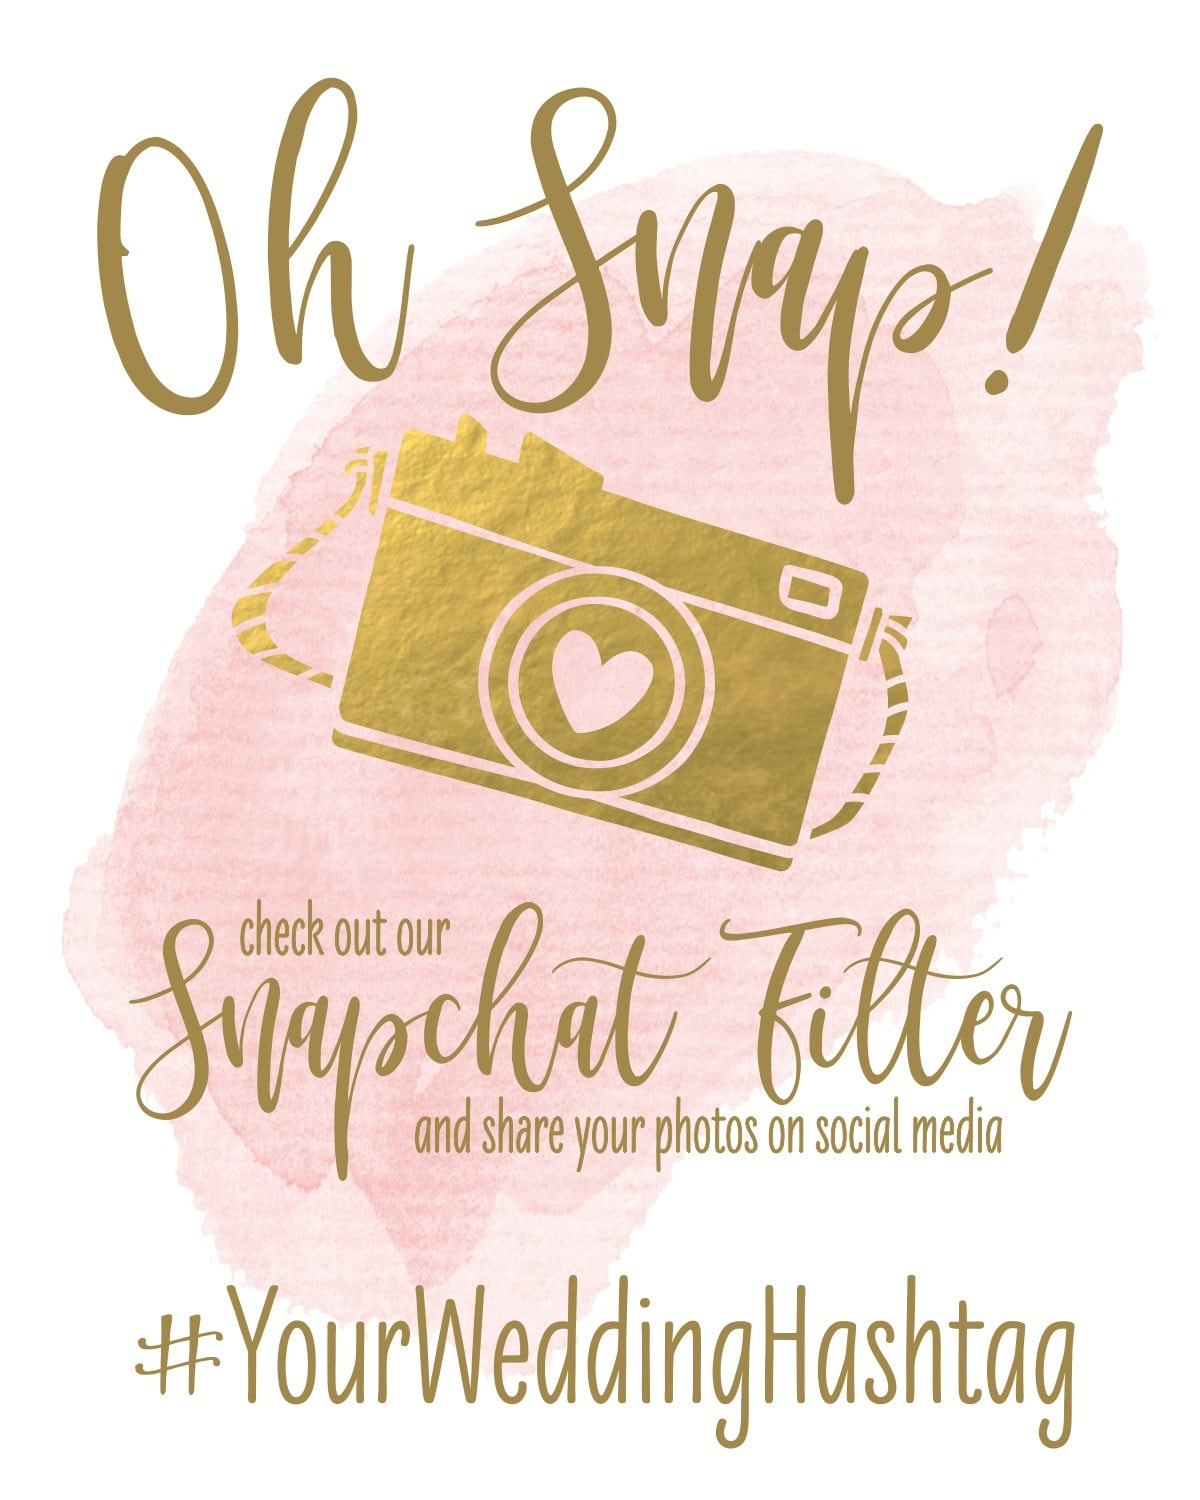 image regarding Printable Snapchat Filters called Oh Snap Marriage ceremony Indication Snapchat Filter Do-it-yourself Printable Bridal